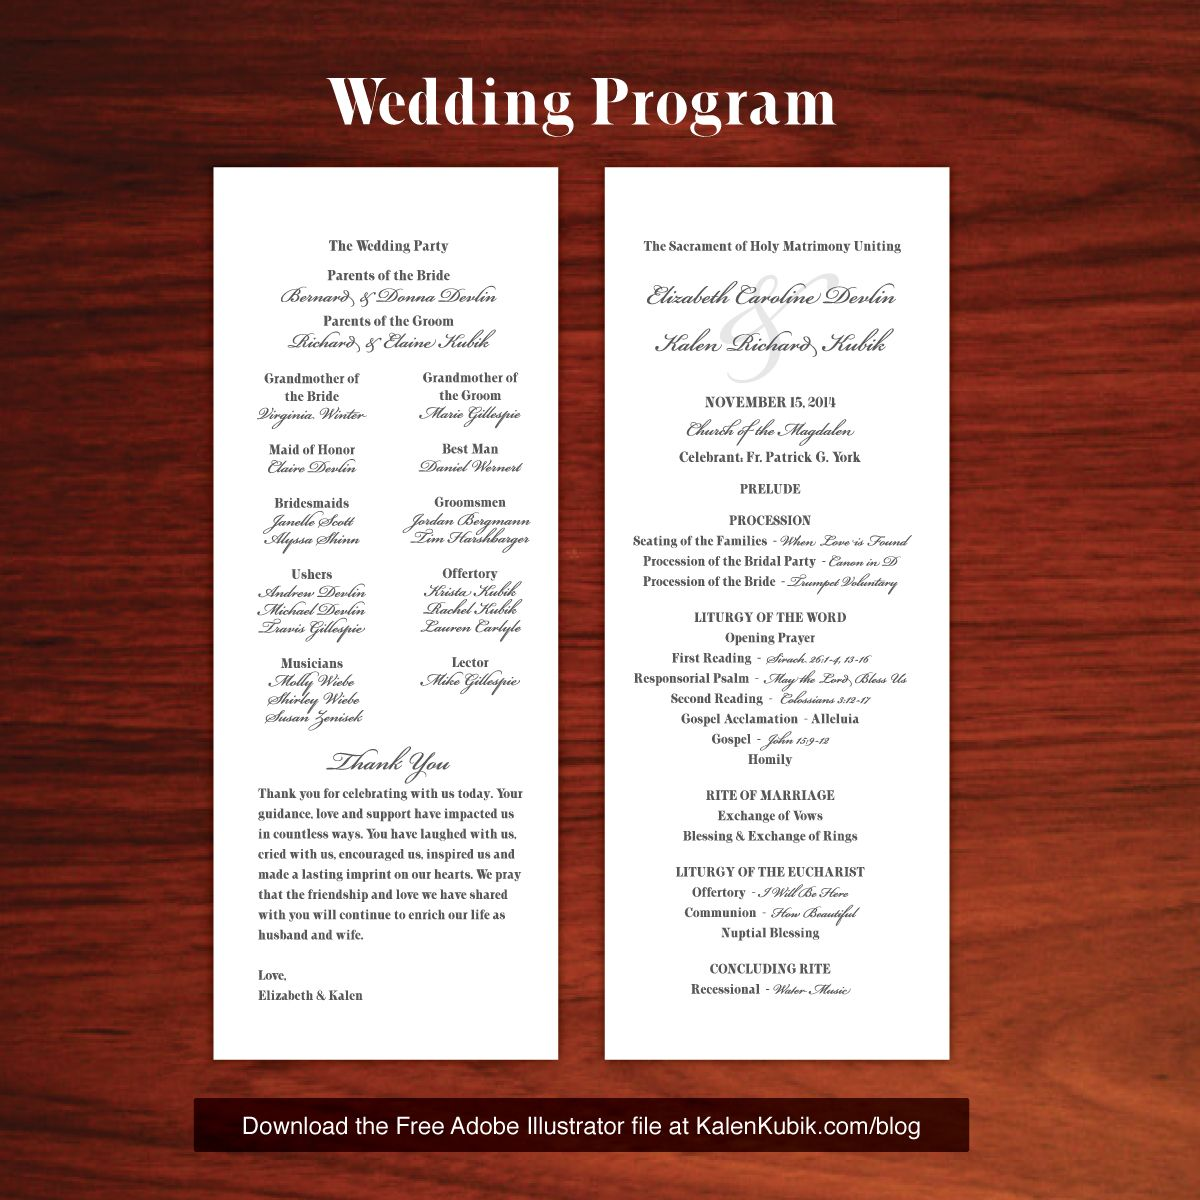 Wedding Brochure Ideas: Free DIY Catholic Wedding Program AI Template. I'm A